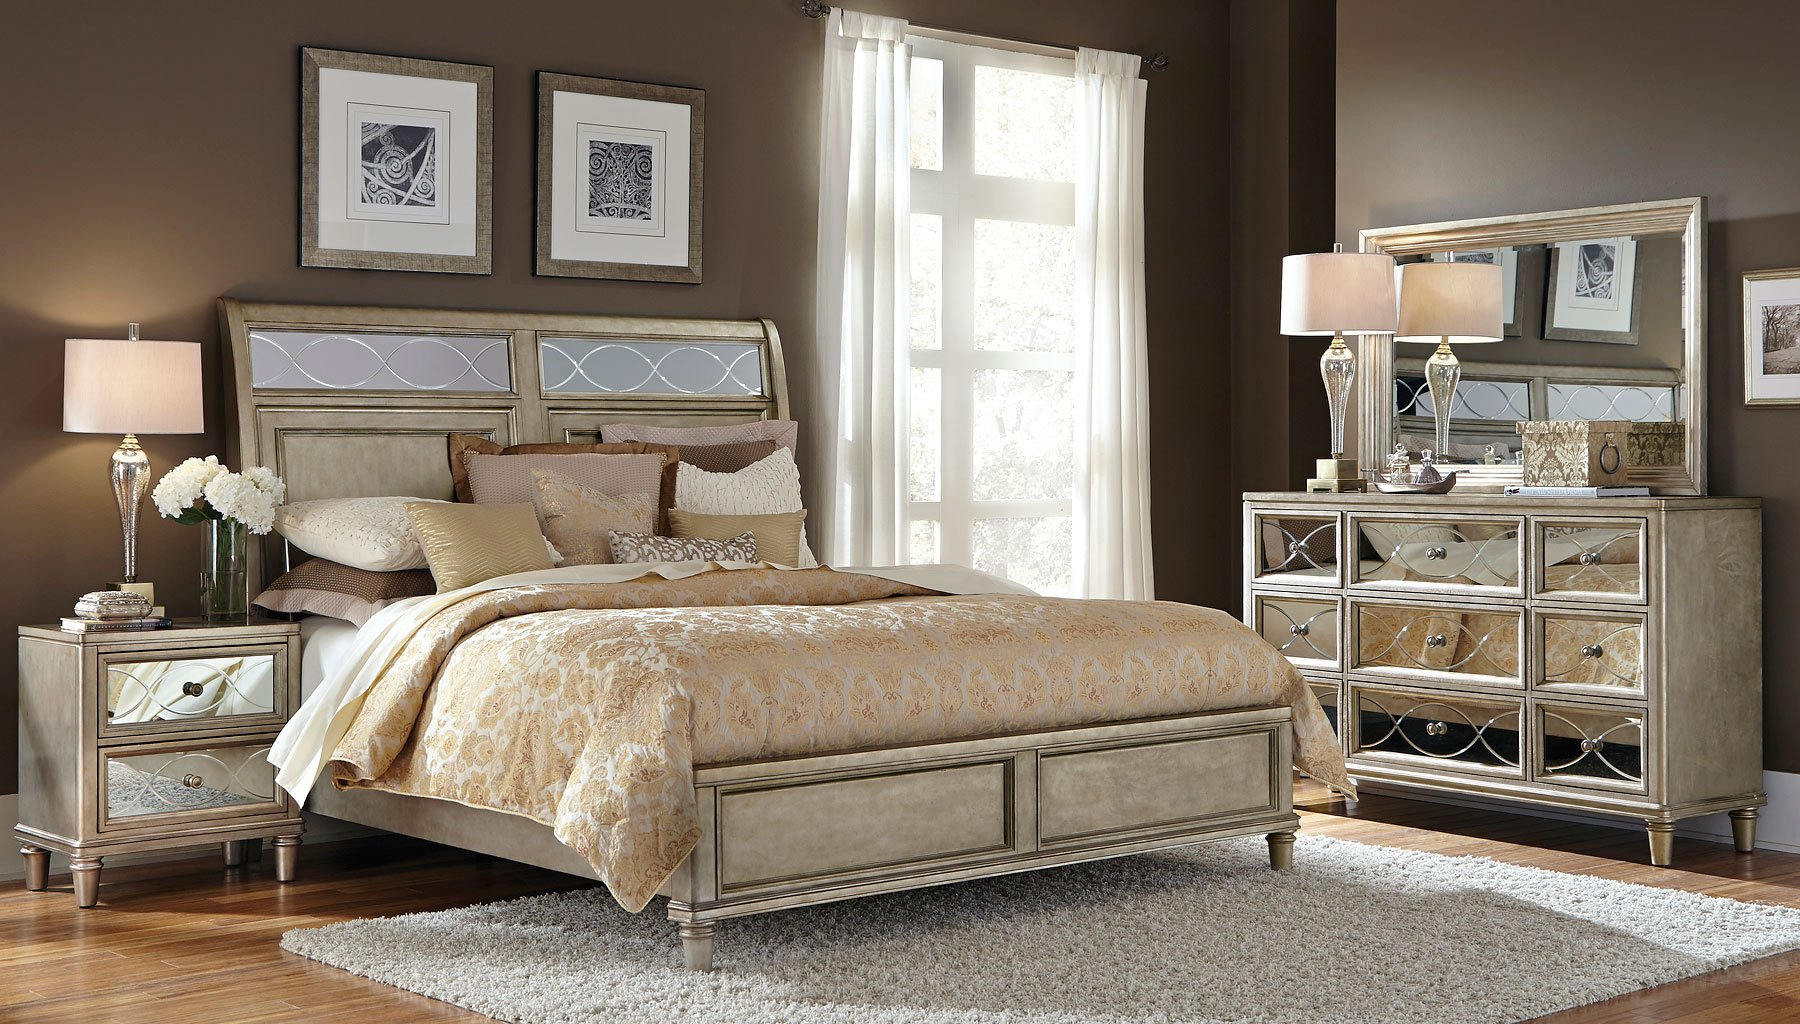 glass sleigh bedroom set bedroom sets bedroom furniture bedroom